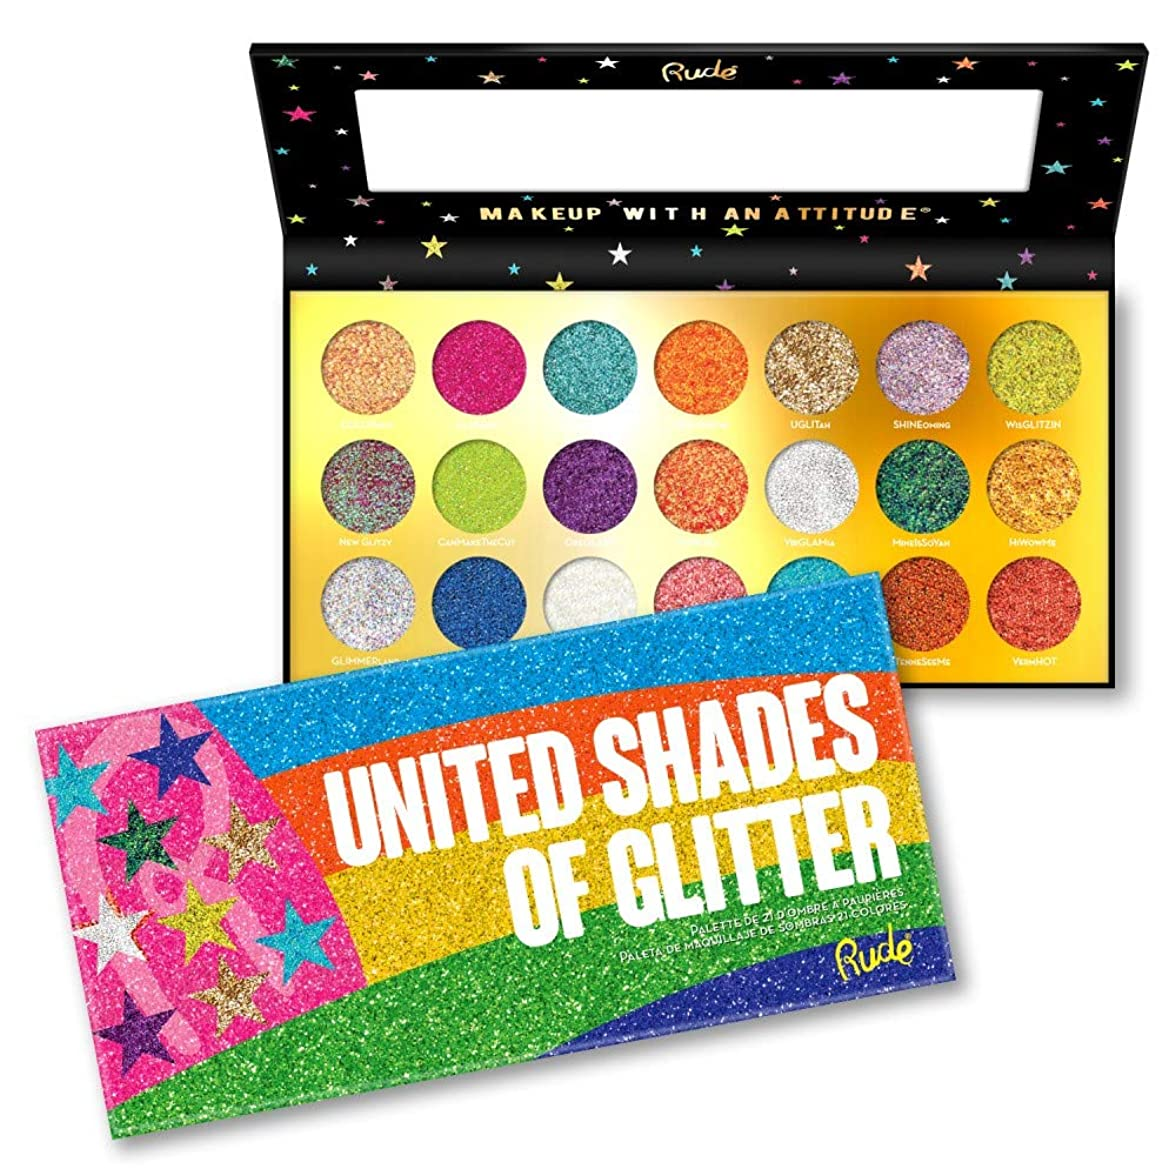 放棄された書店キャンベラ(6 Pack) RUDE? United Shades of Glitter - 21 Pressed Glitter Palette (並行輸入品)